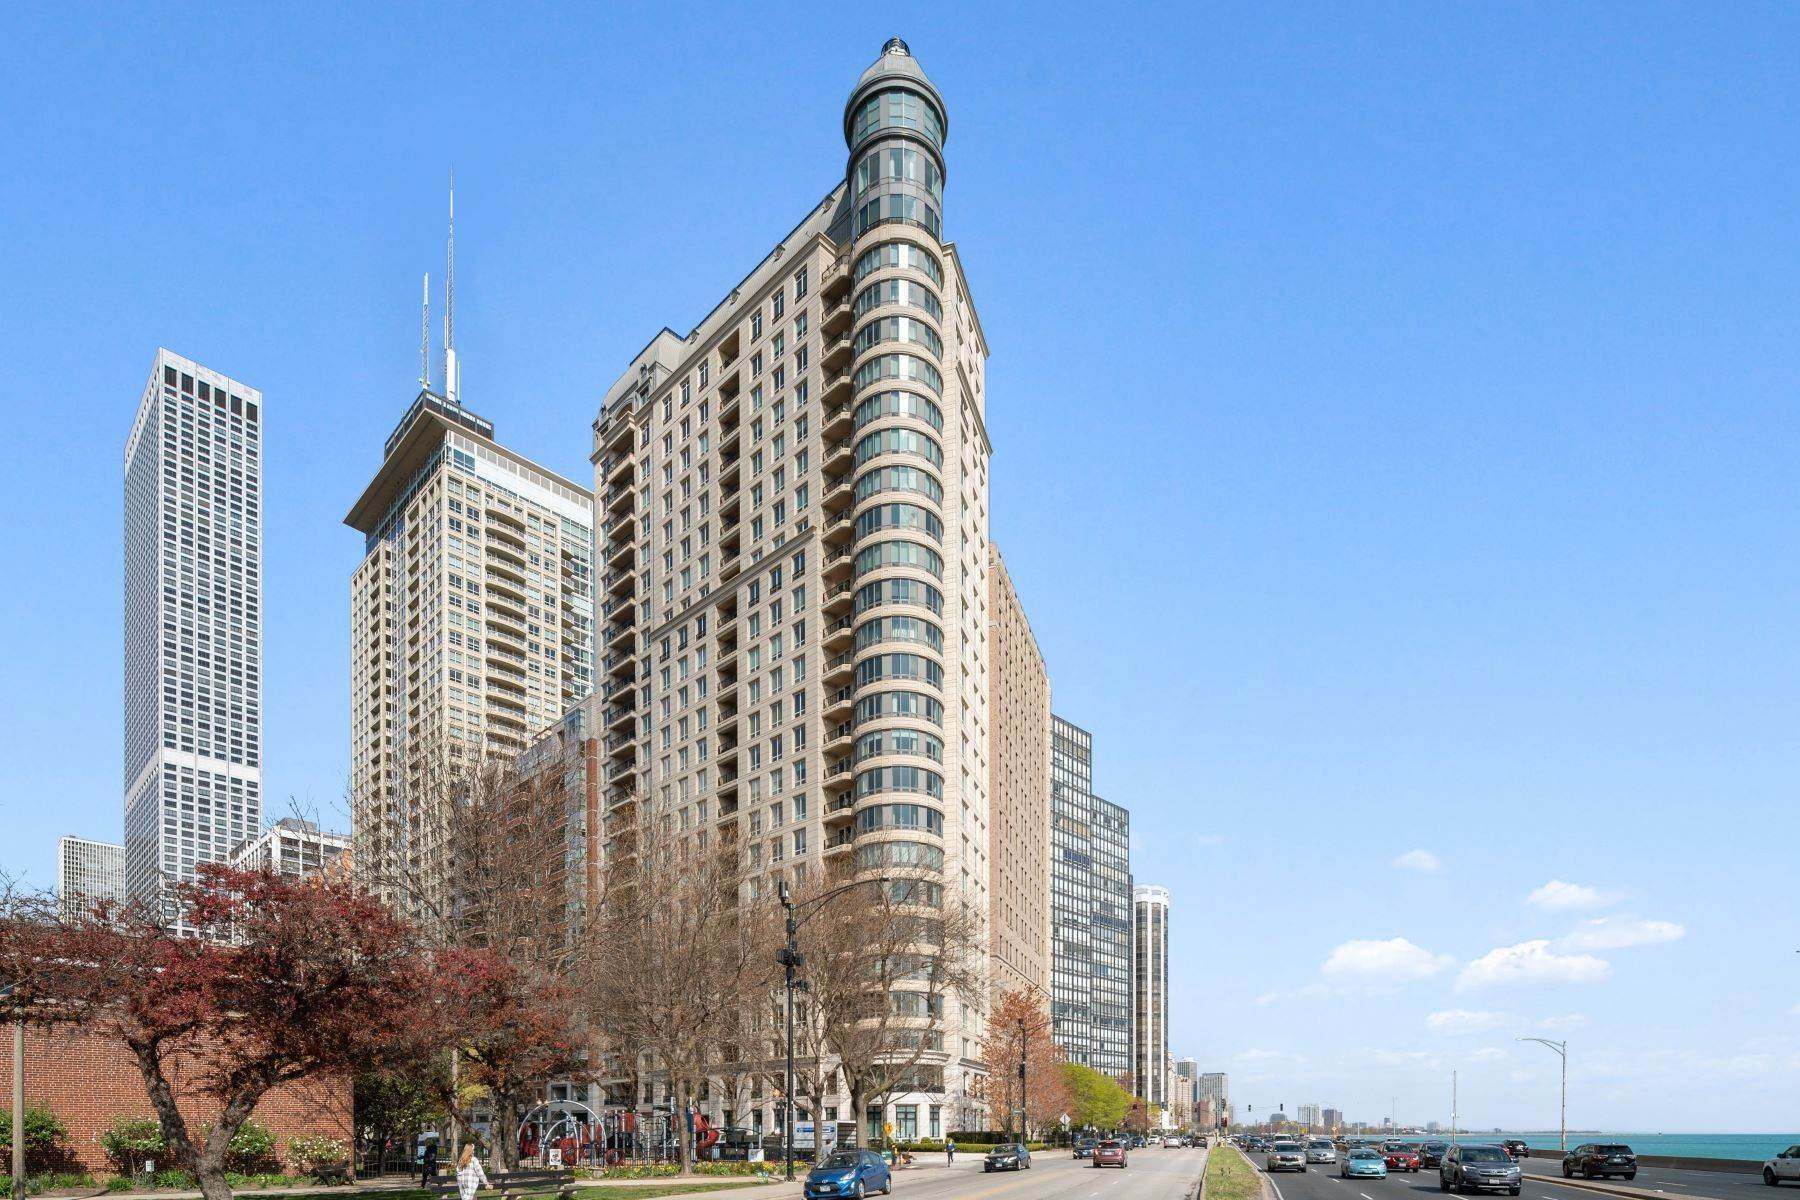 Property for Sale at Masterpiece Overlooking the Lake and Lake Shore Park 840 N Lake Shore Drive, Unit 203 Chicago, Illinois 60611 United States